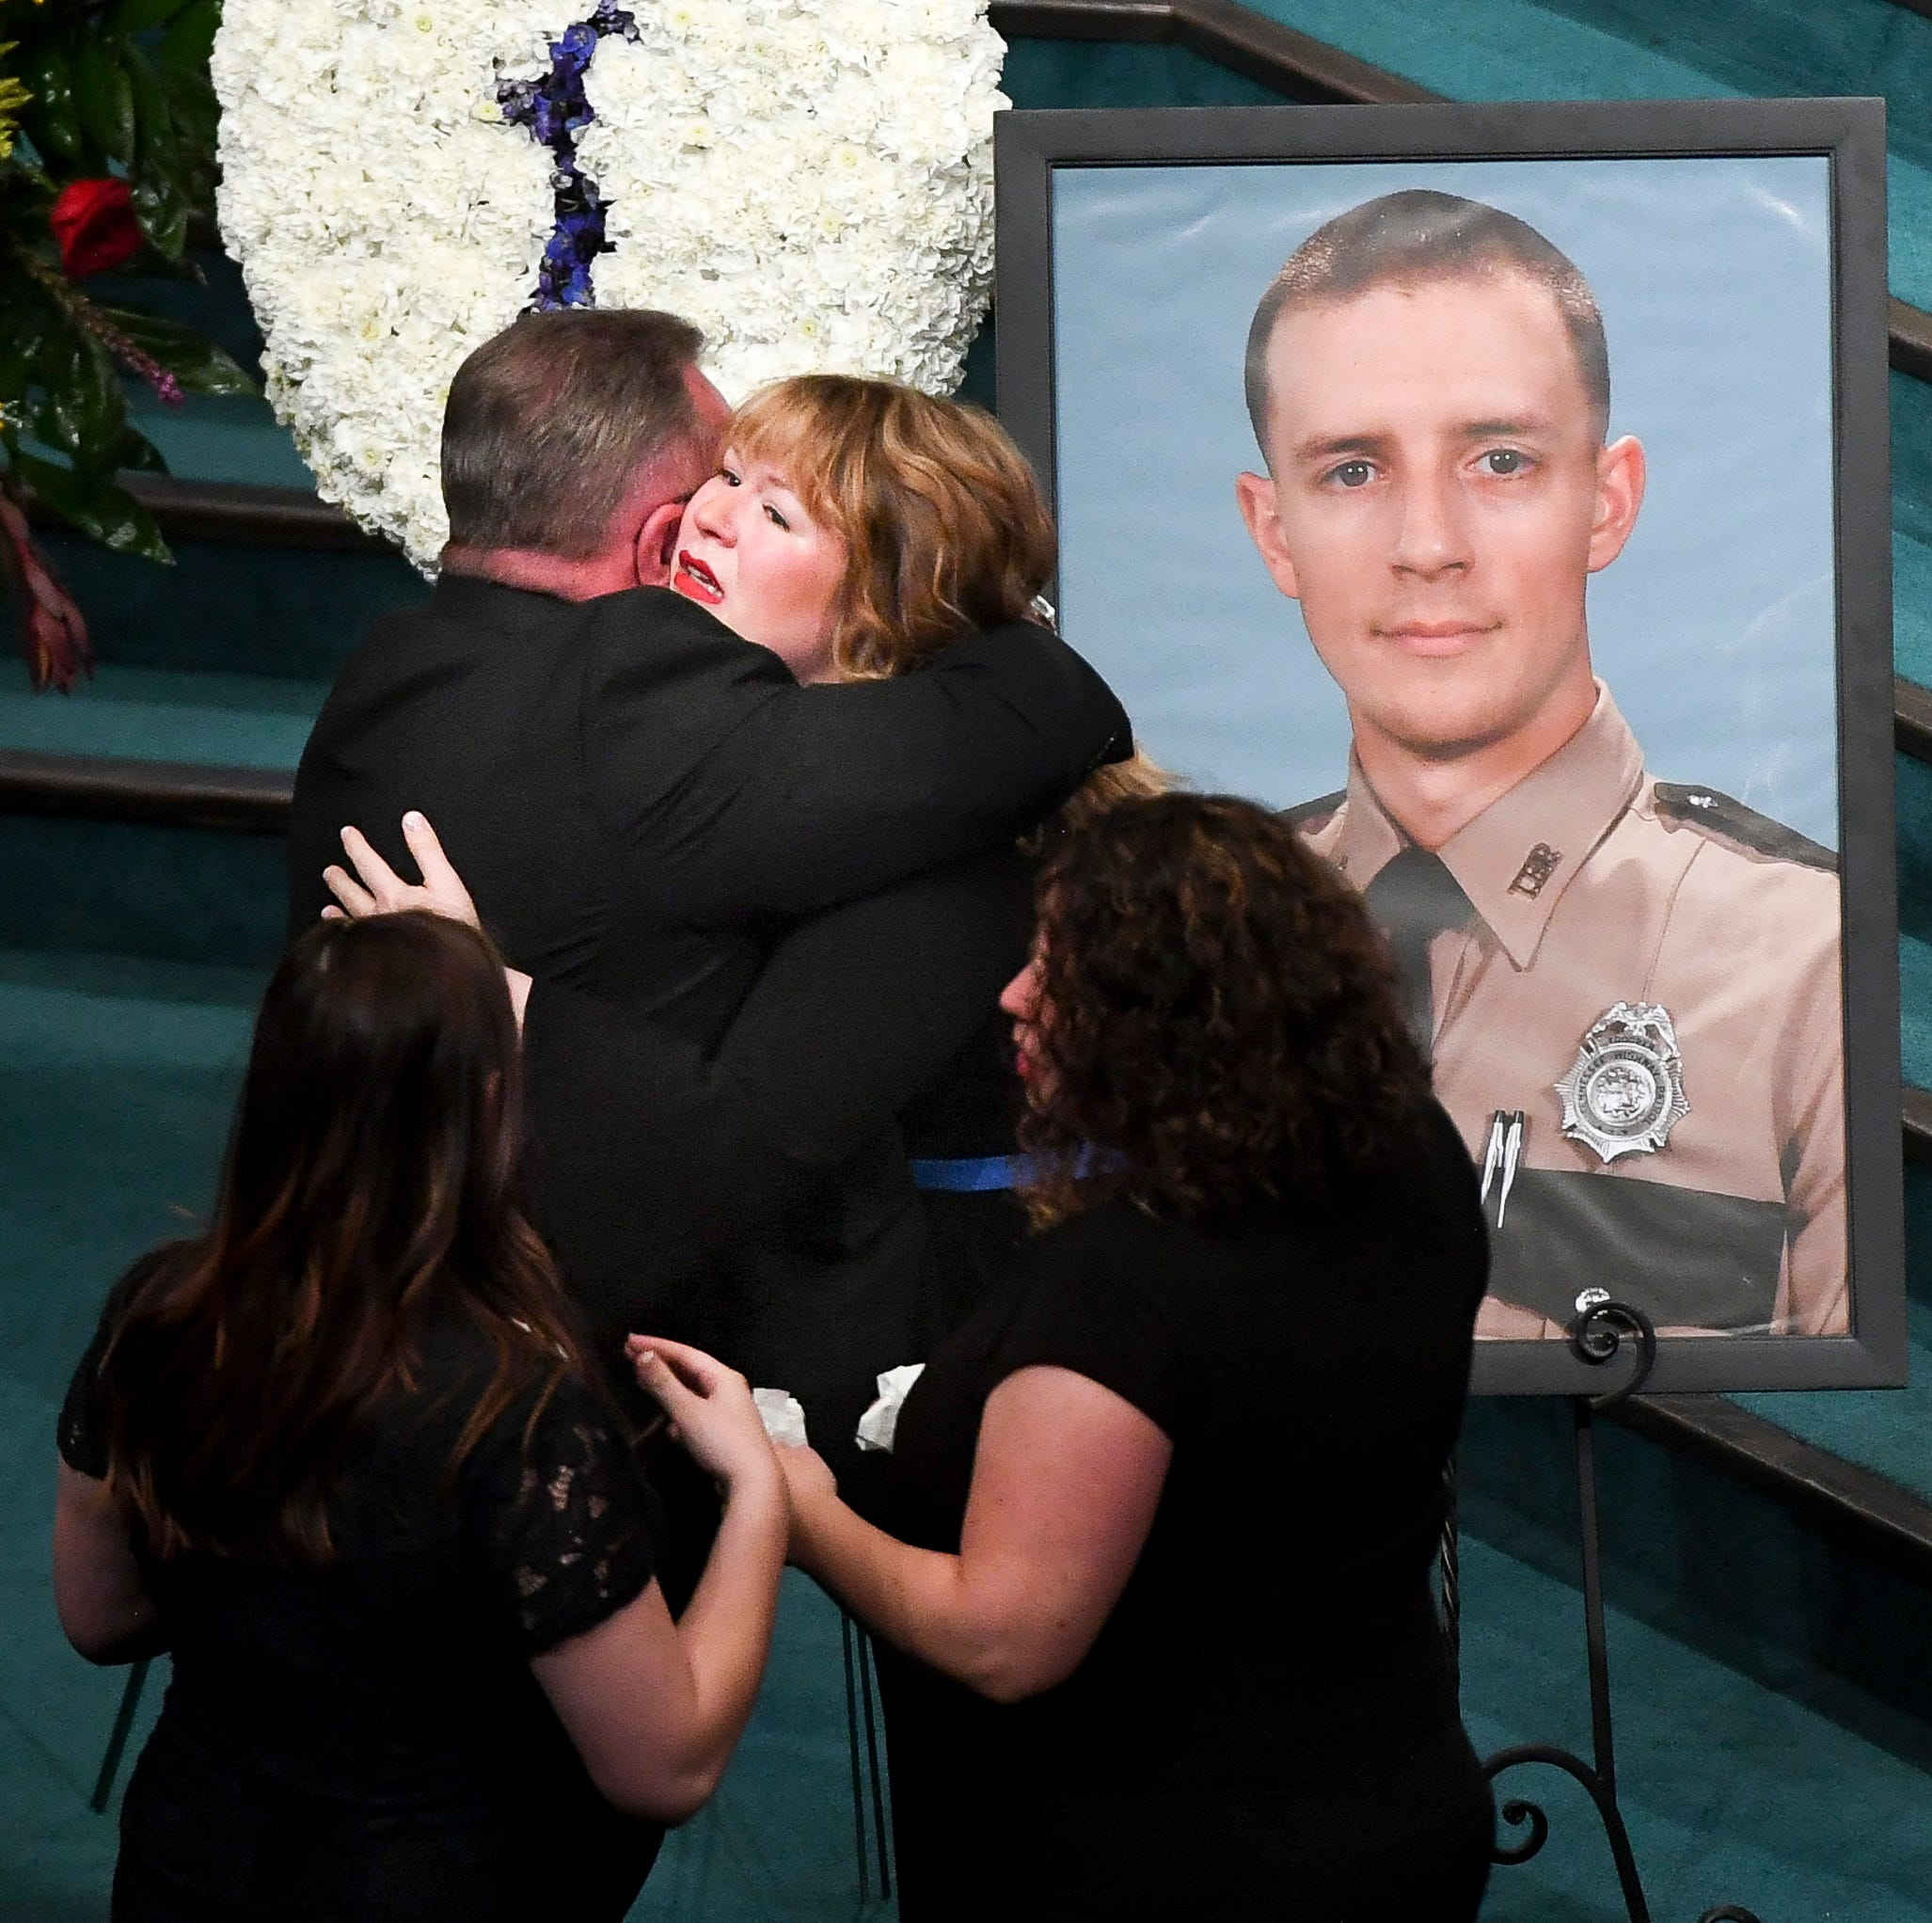 Forever a servant: THP Trooper Matthew Gatti laid to rest by family, friends, brothers in blue